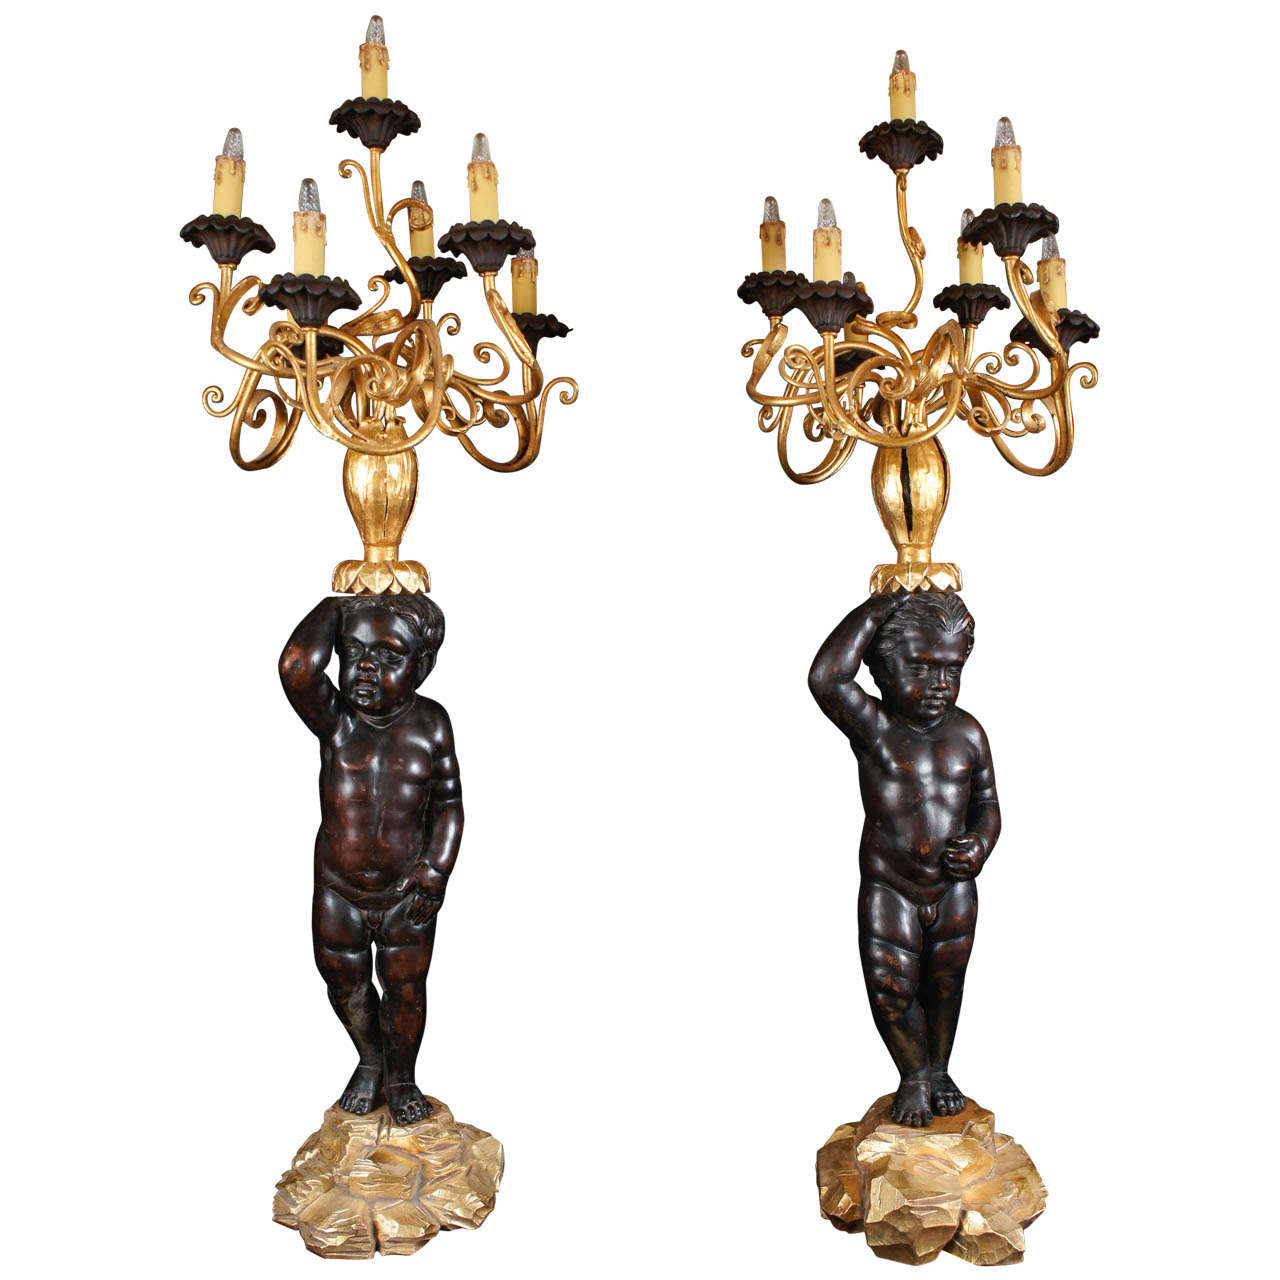 Pair of Large Carved and Gilded Wood Baroque Putti and Gilded Iron Candelabra